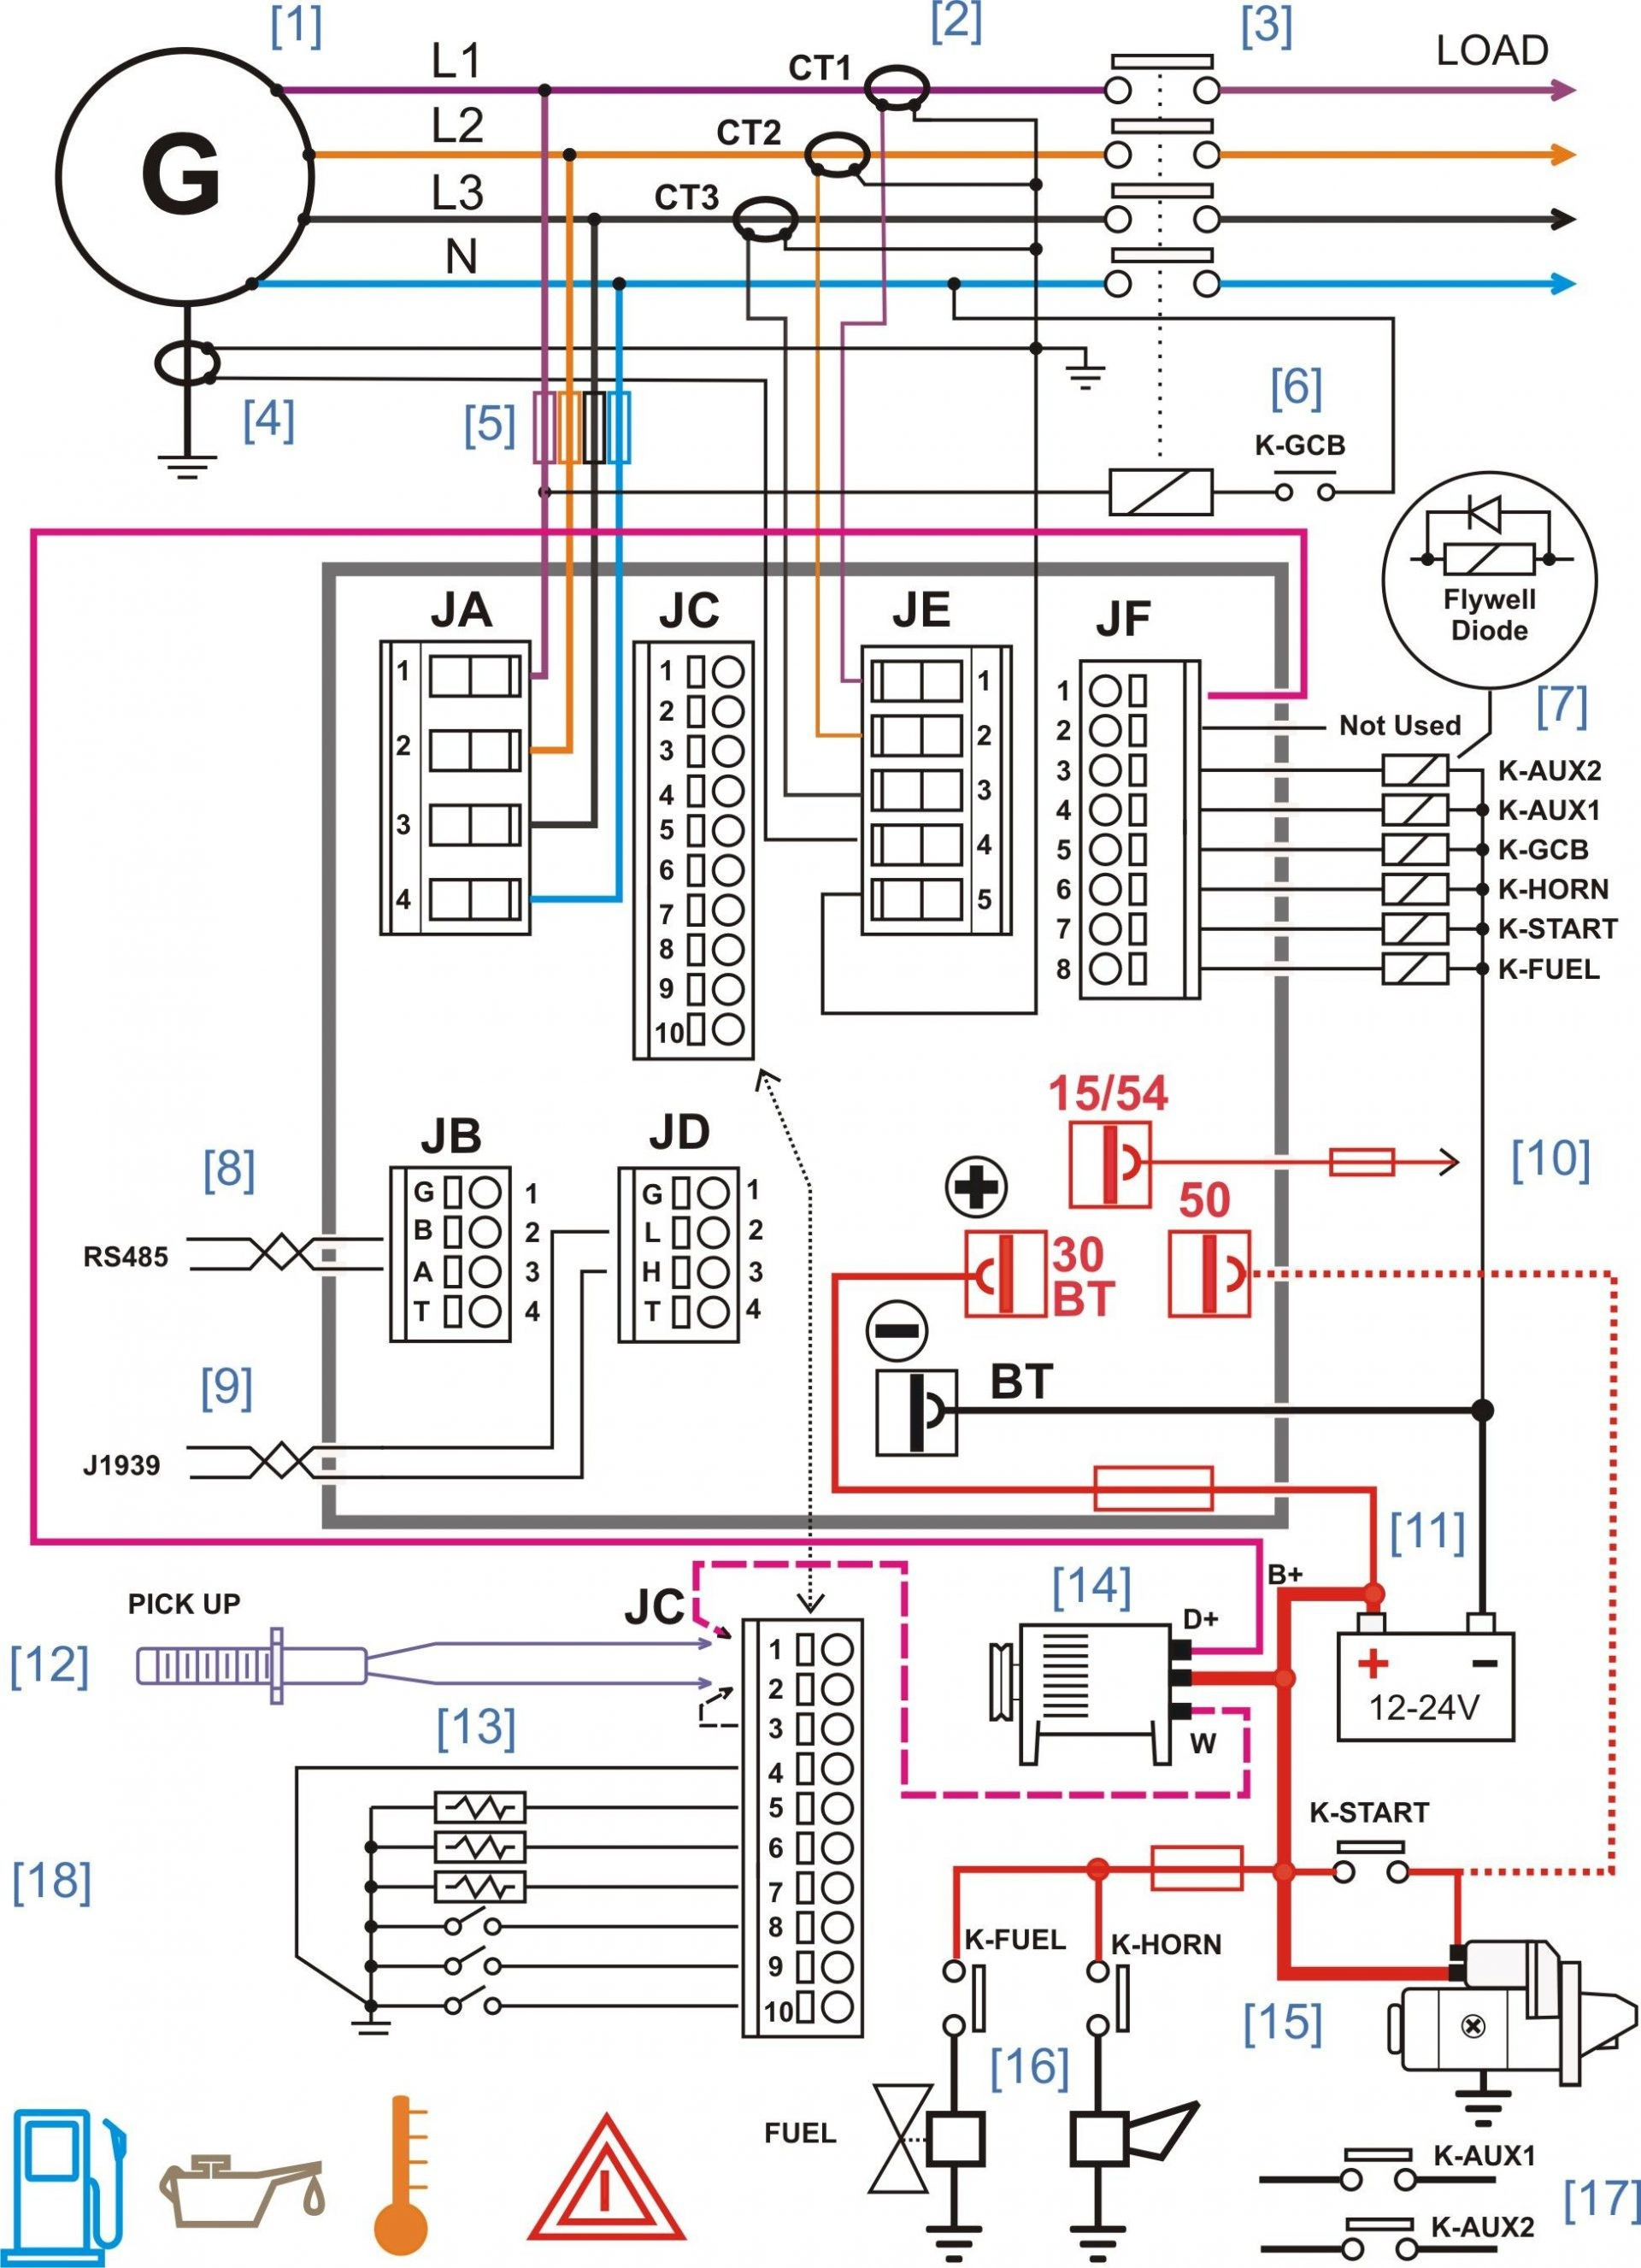 rv distribution panel wiring diagram Collection-Wiring Diagram A Distribution Board Valid Wiring Diagram for Distribution Board New Electrical Panel Board 15-h